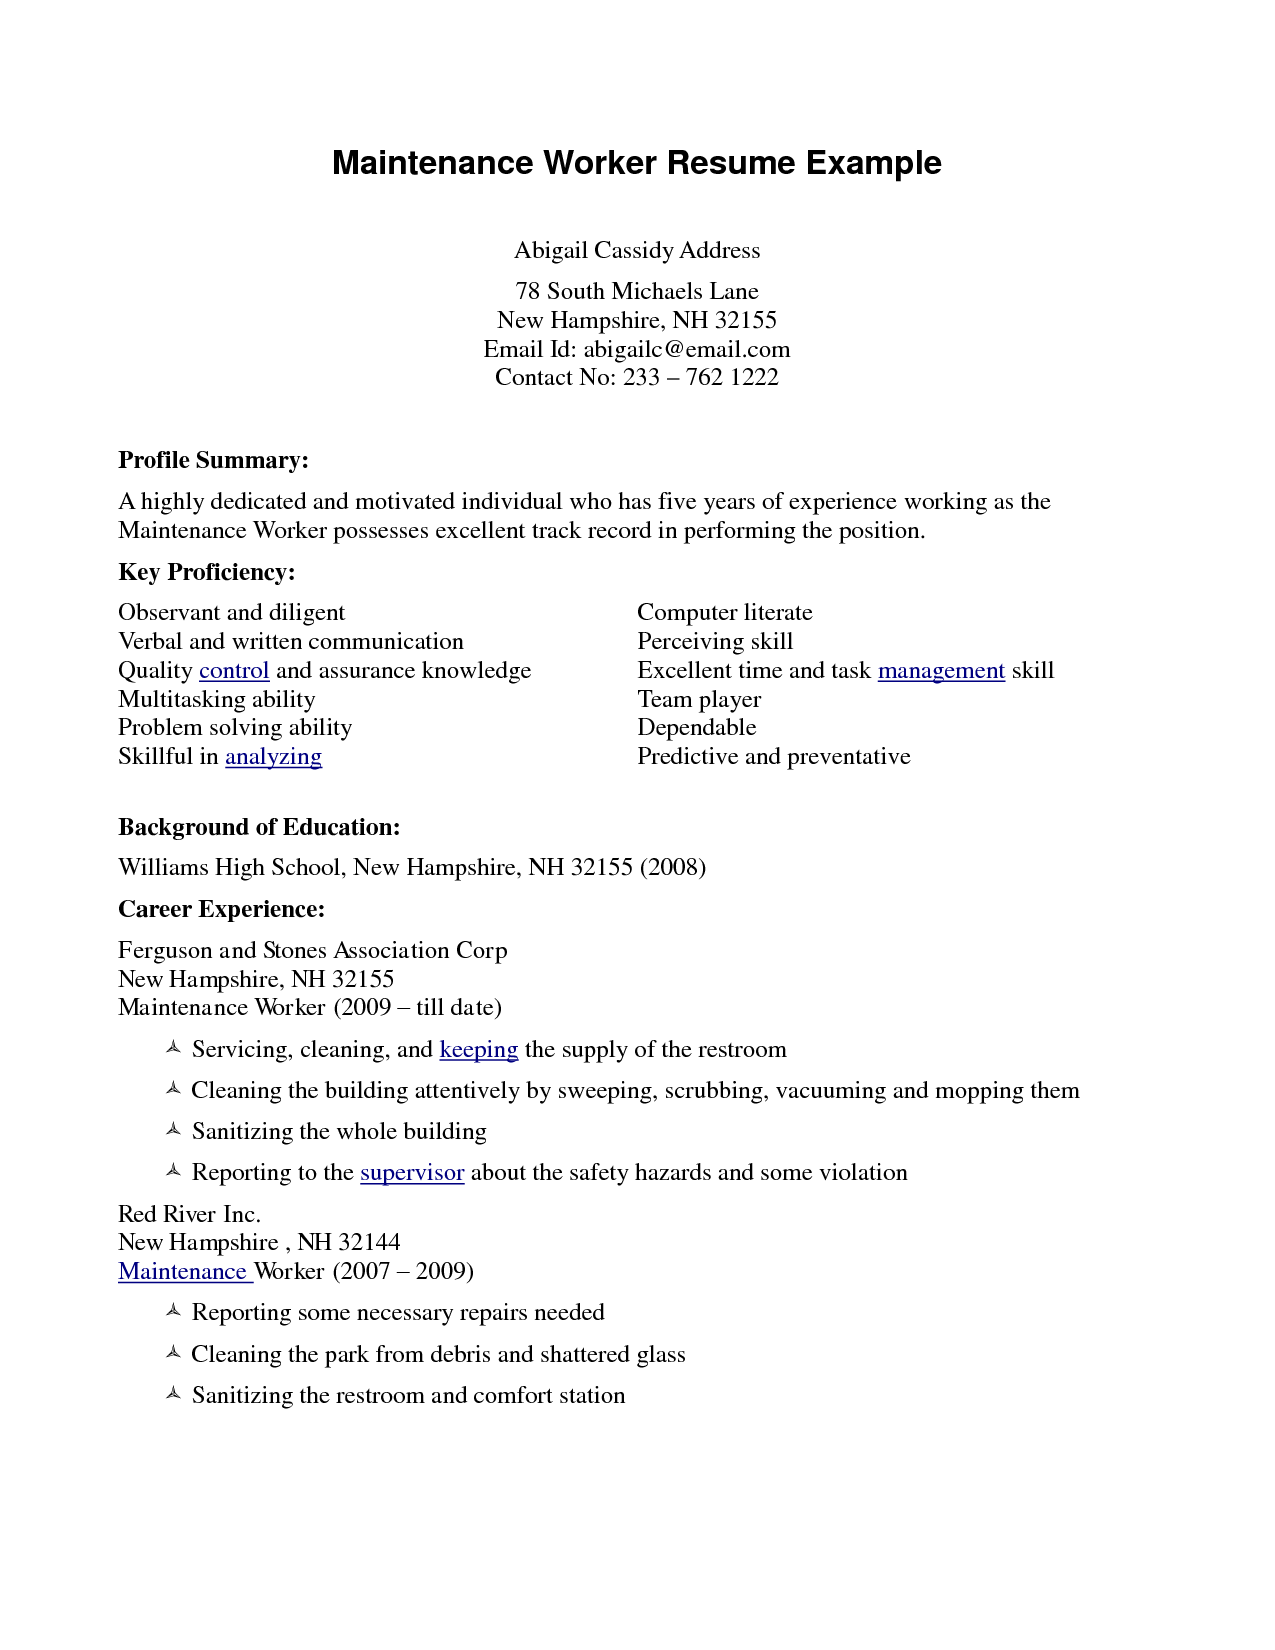 Microsoft Office Resume House Cleaning Experience Resume Sample